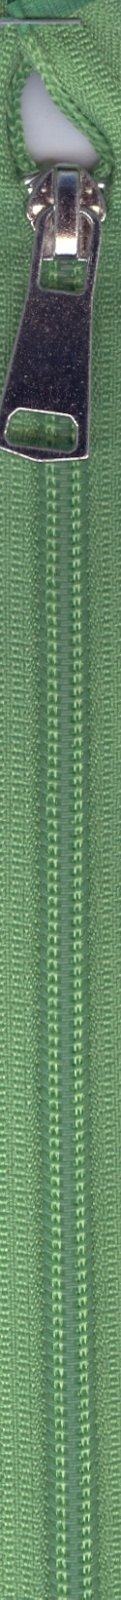 24 Separating Zipper #5 - Lawn Green with Silver Pull